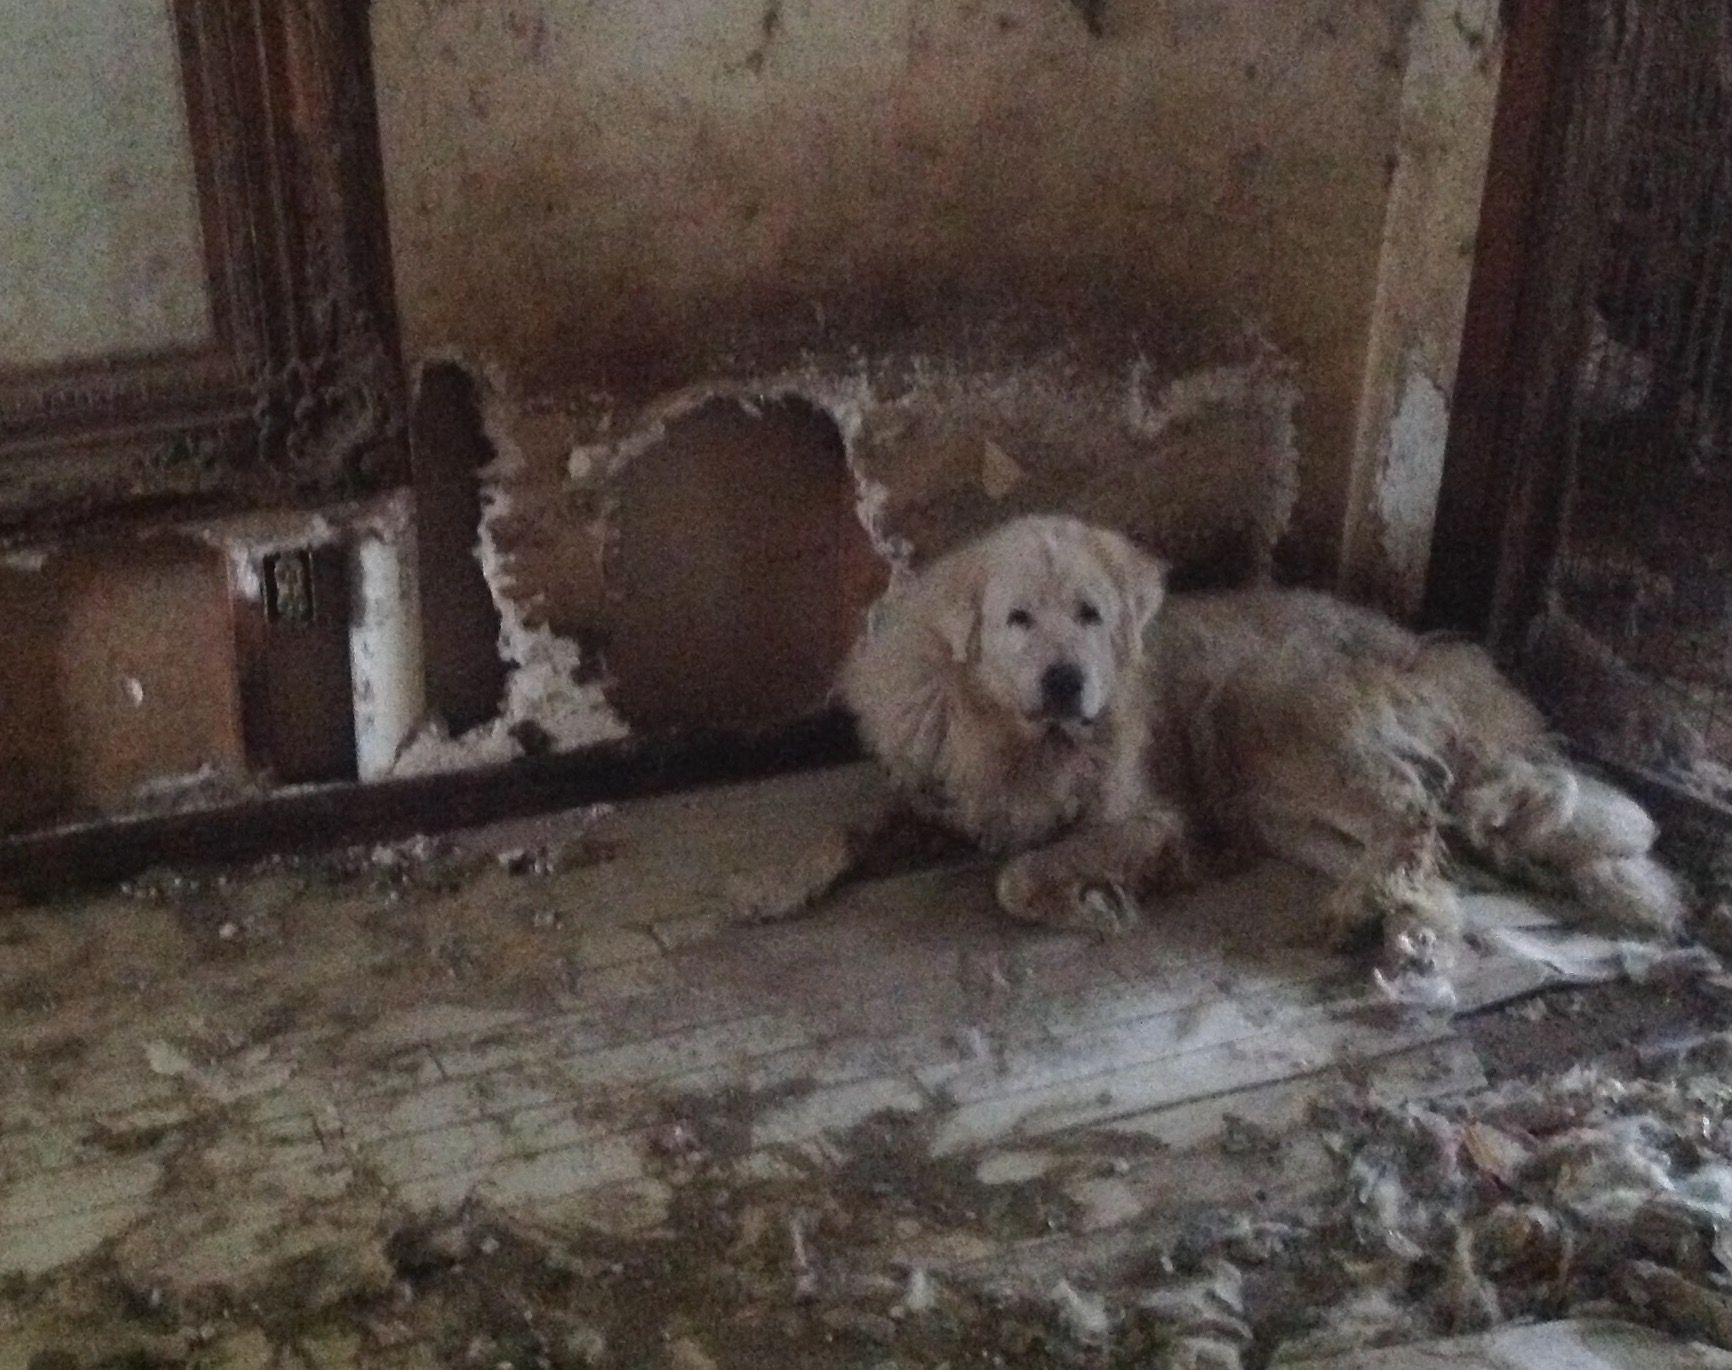 Florida Animal Refuge Rescues Great Pyrenees From Heartbreaking